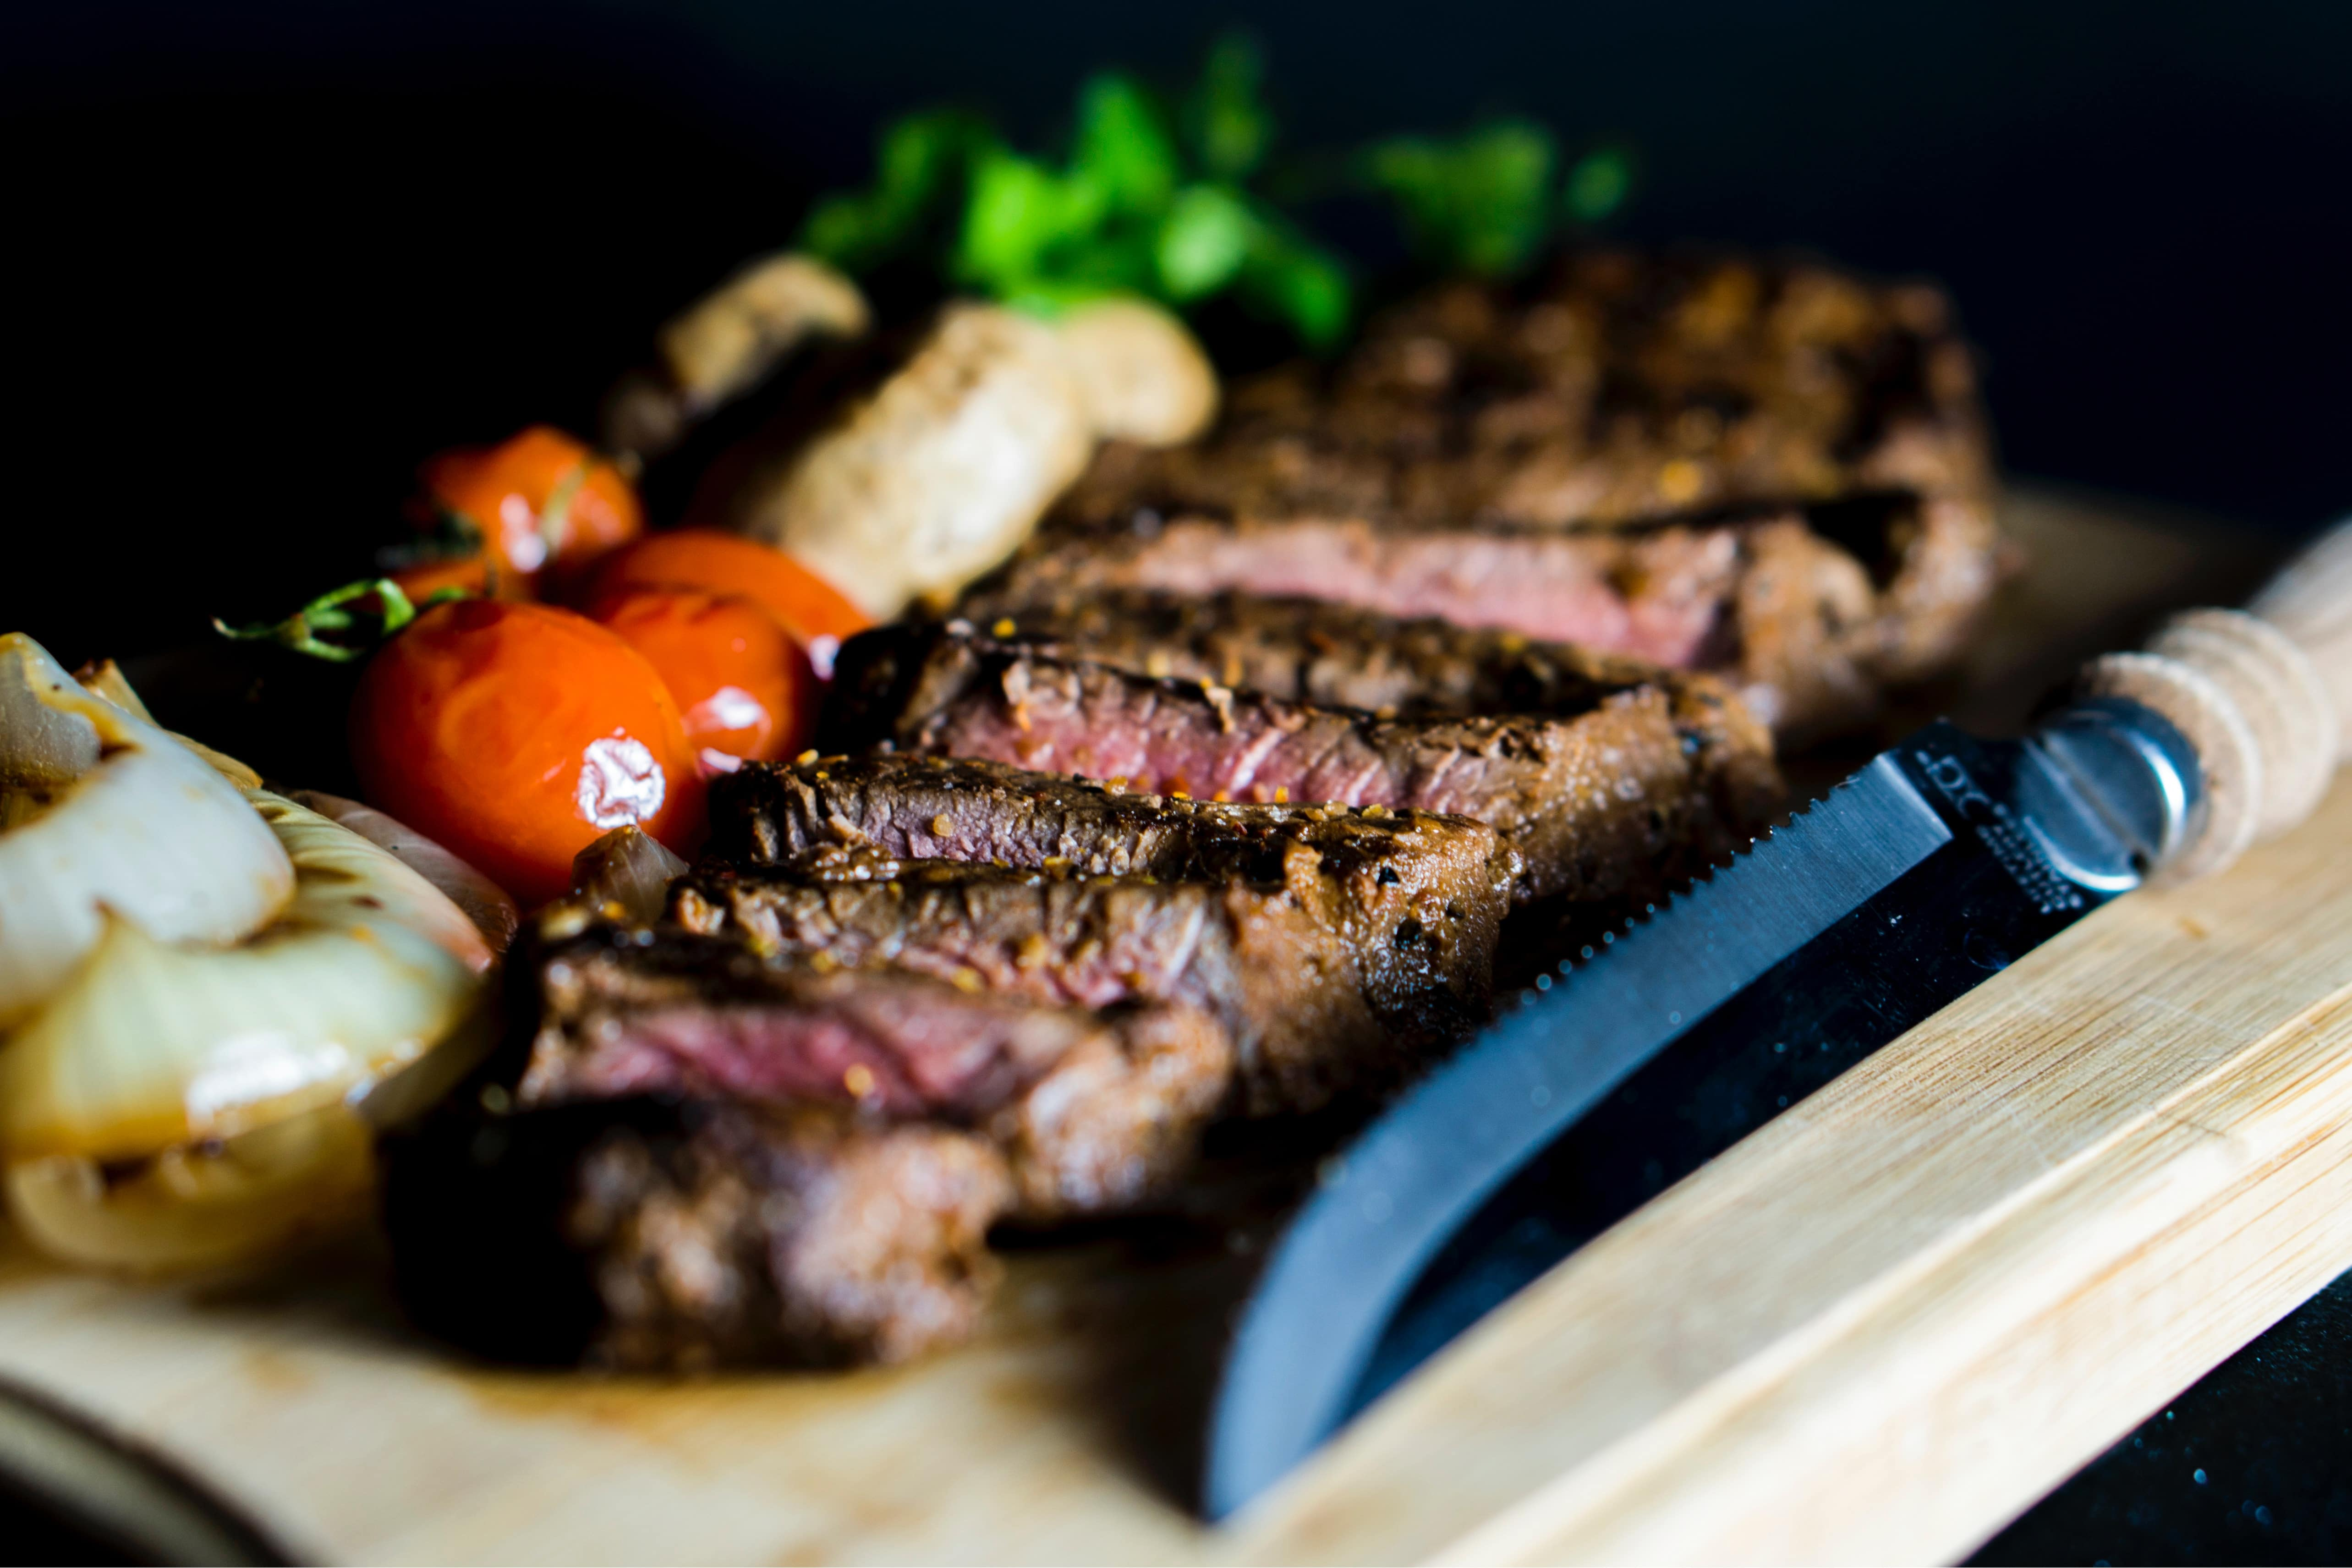 A steak on a cutting board with vegetables.